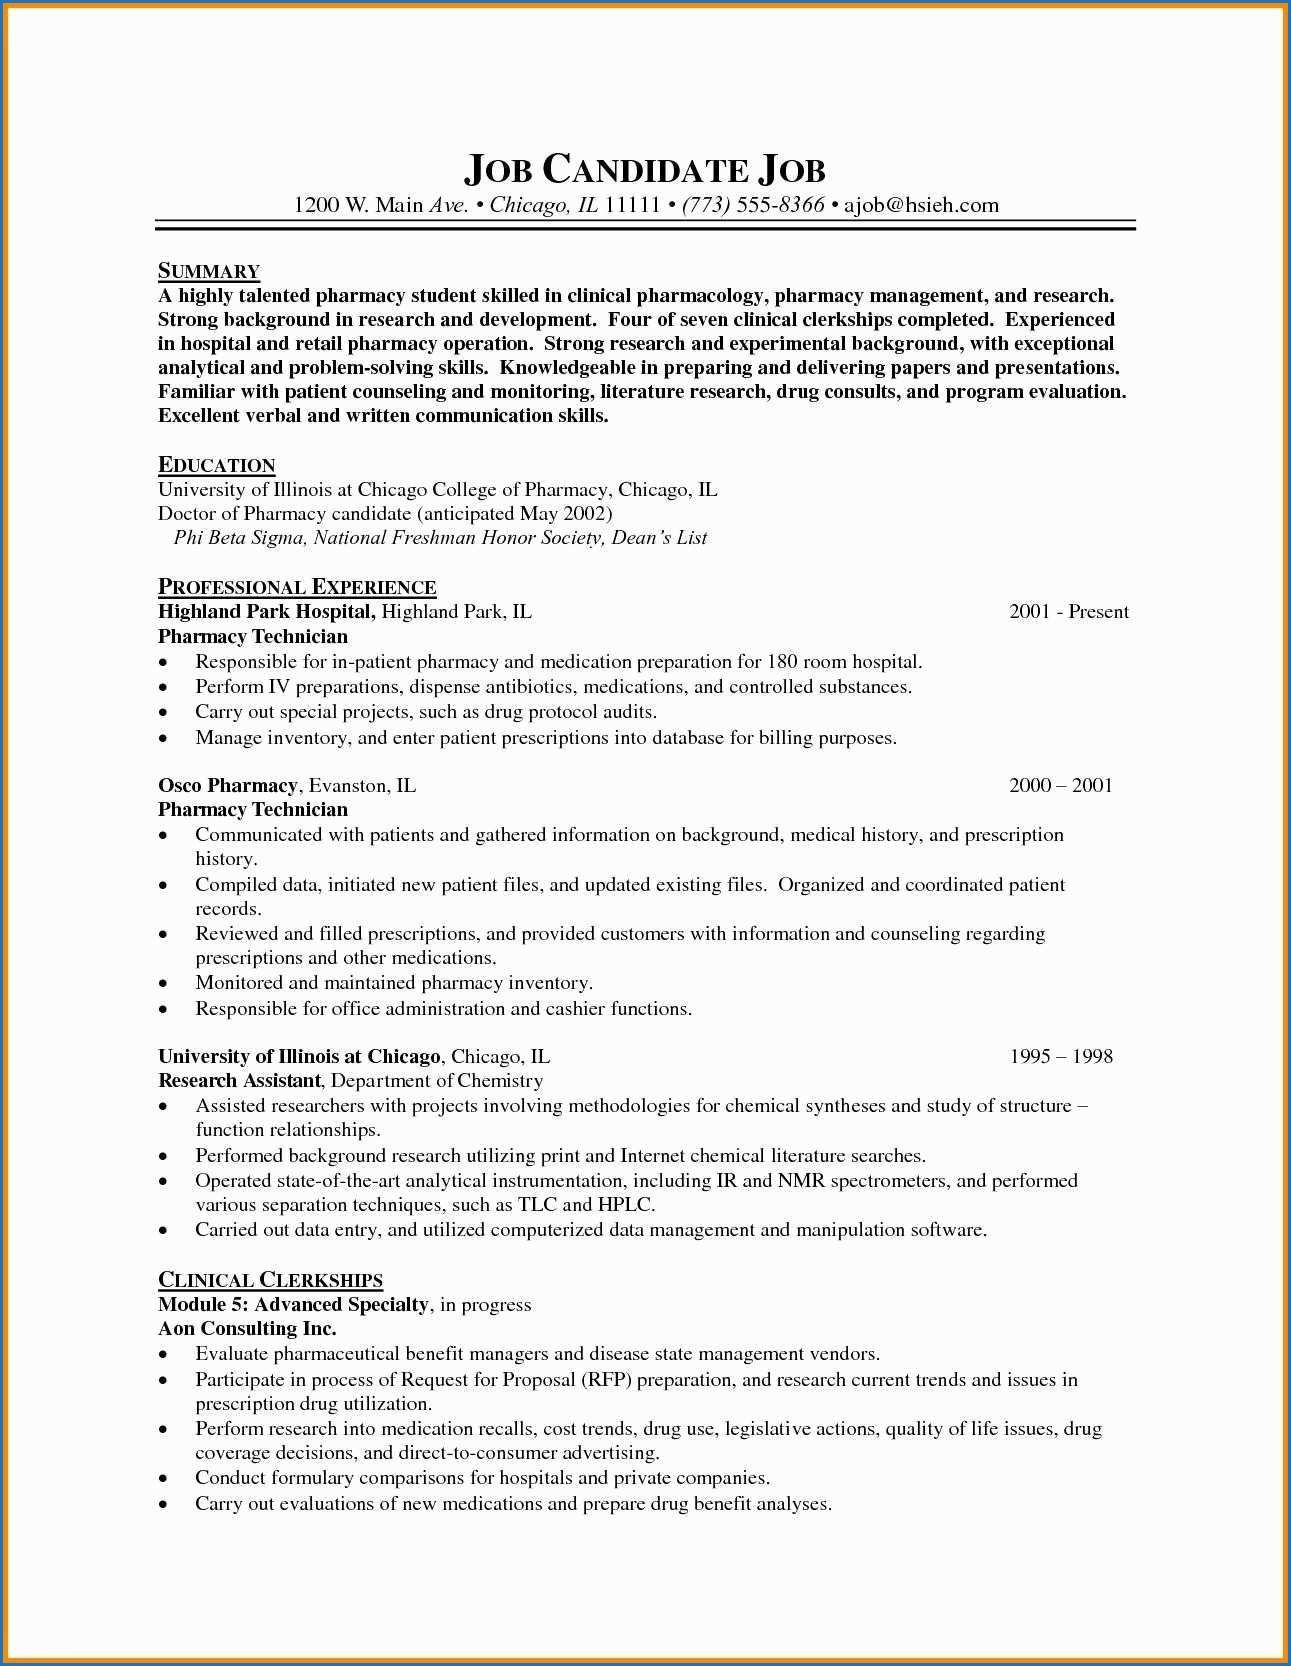 8 Resume Examples For Cashier Positions Check More At Https Www Ortelle Org Resume Examples For Cashier Positions